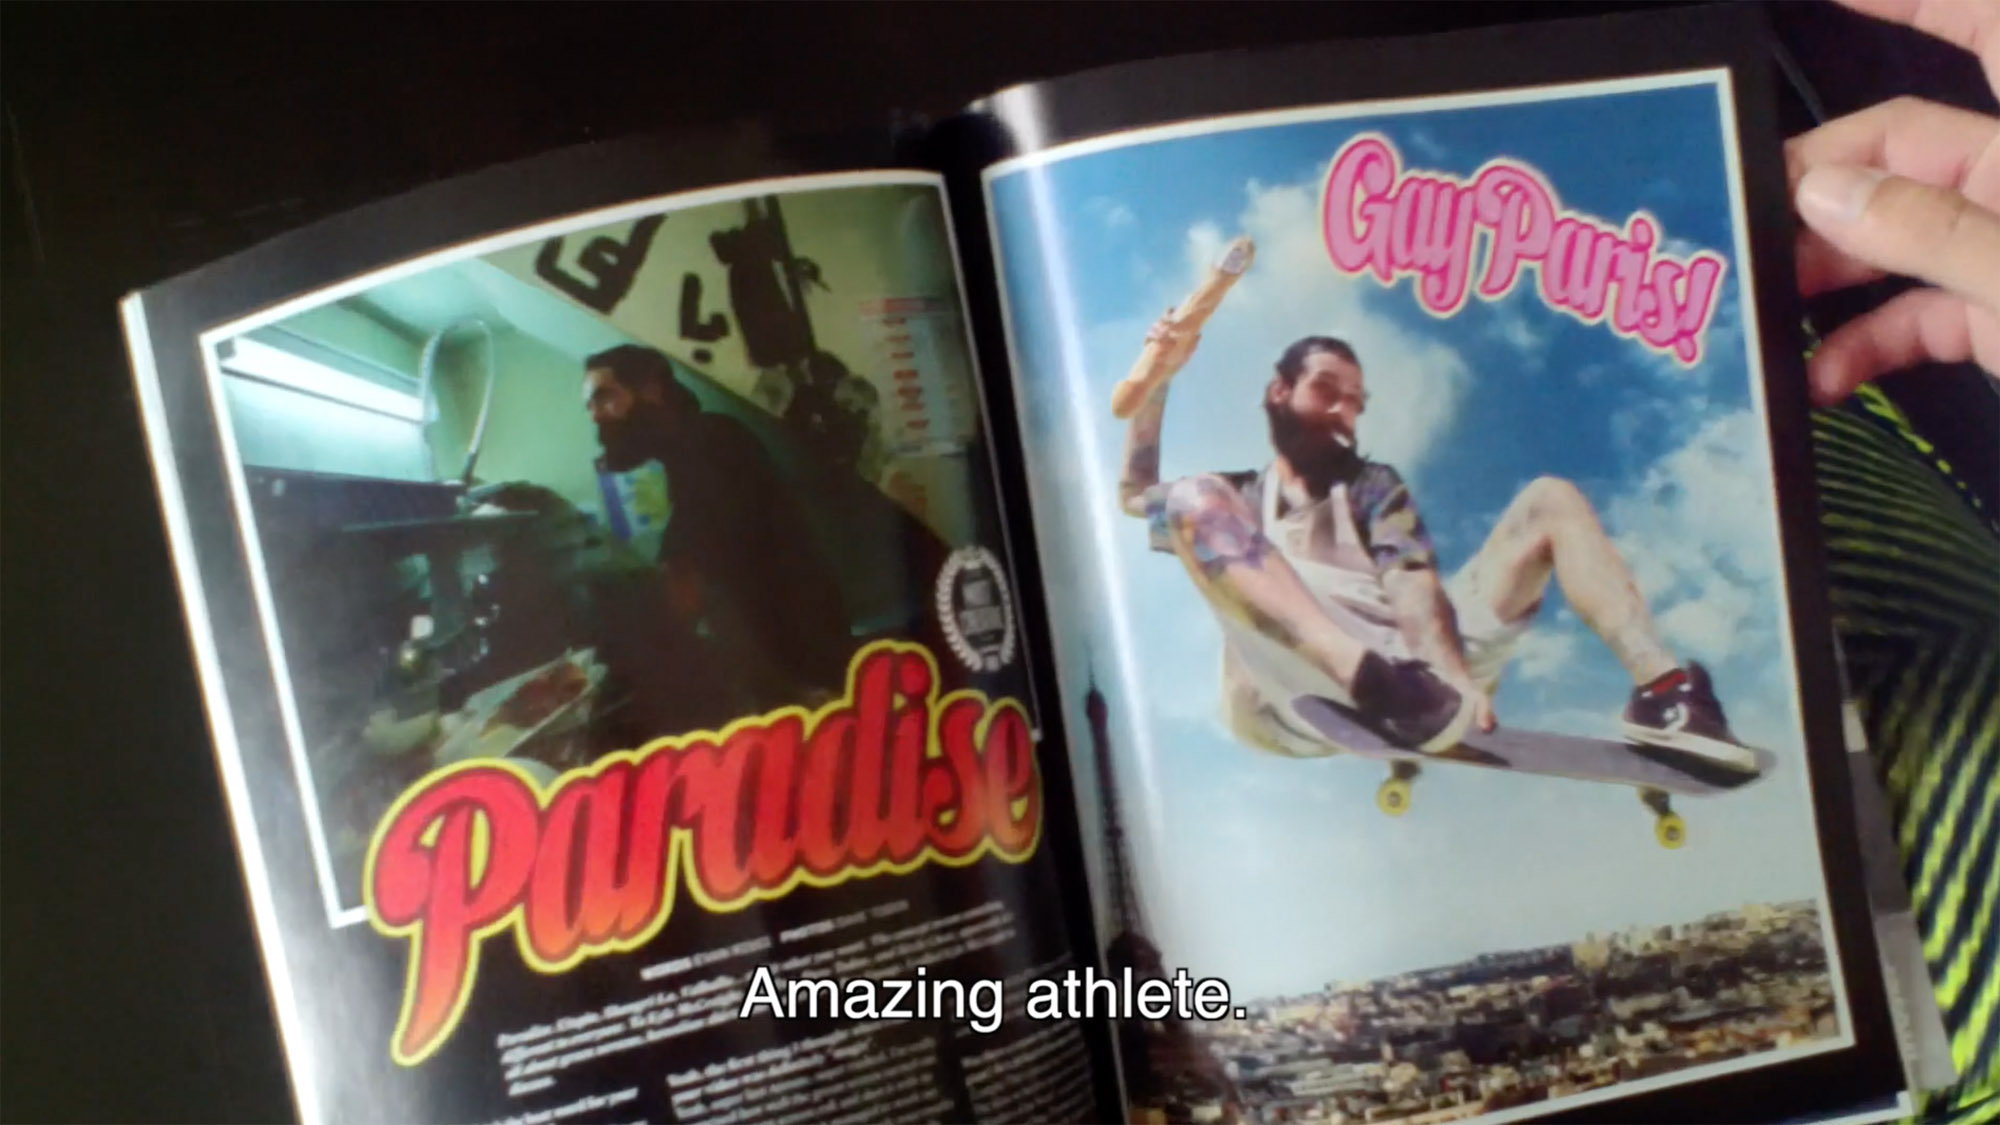 """Gallery images from SKEYTBOARDING. A sequel to the 2013 film """"Paradise"""". We catch up with Pavel Lebedev to talk about the hustle and the struggle to do what you love. Made for the King Shit Magazine Connect the Dots Contest."""